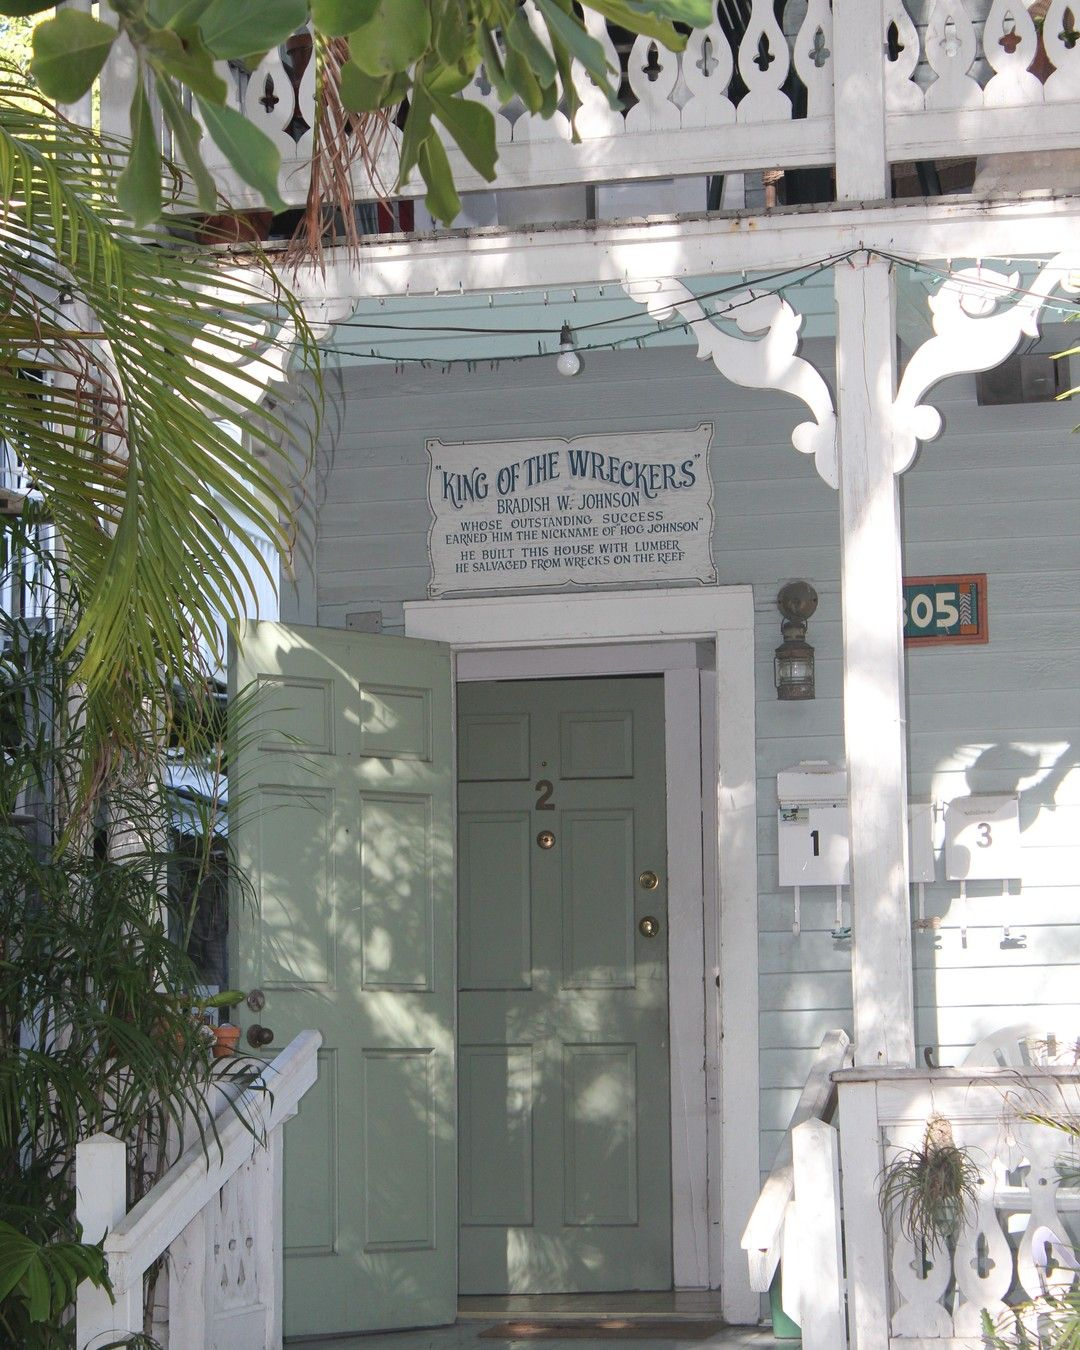 Funnkeywest Posted To Instagram There Is So Much History To See When You Walk The Streets Of Key West Historic Key West Key West Key West Florida